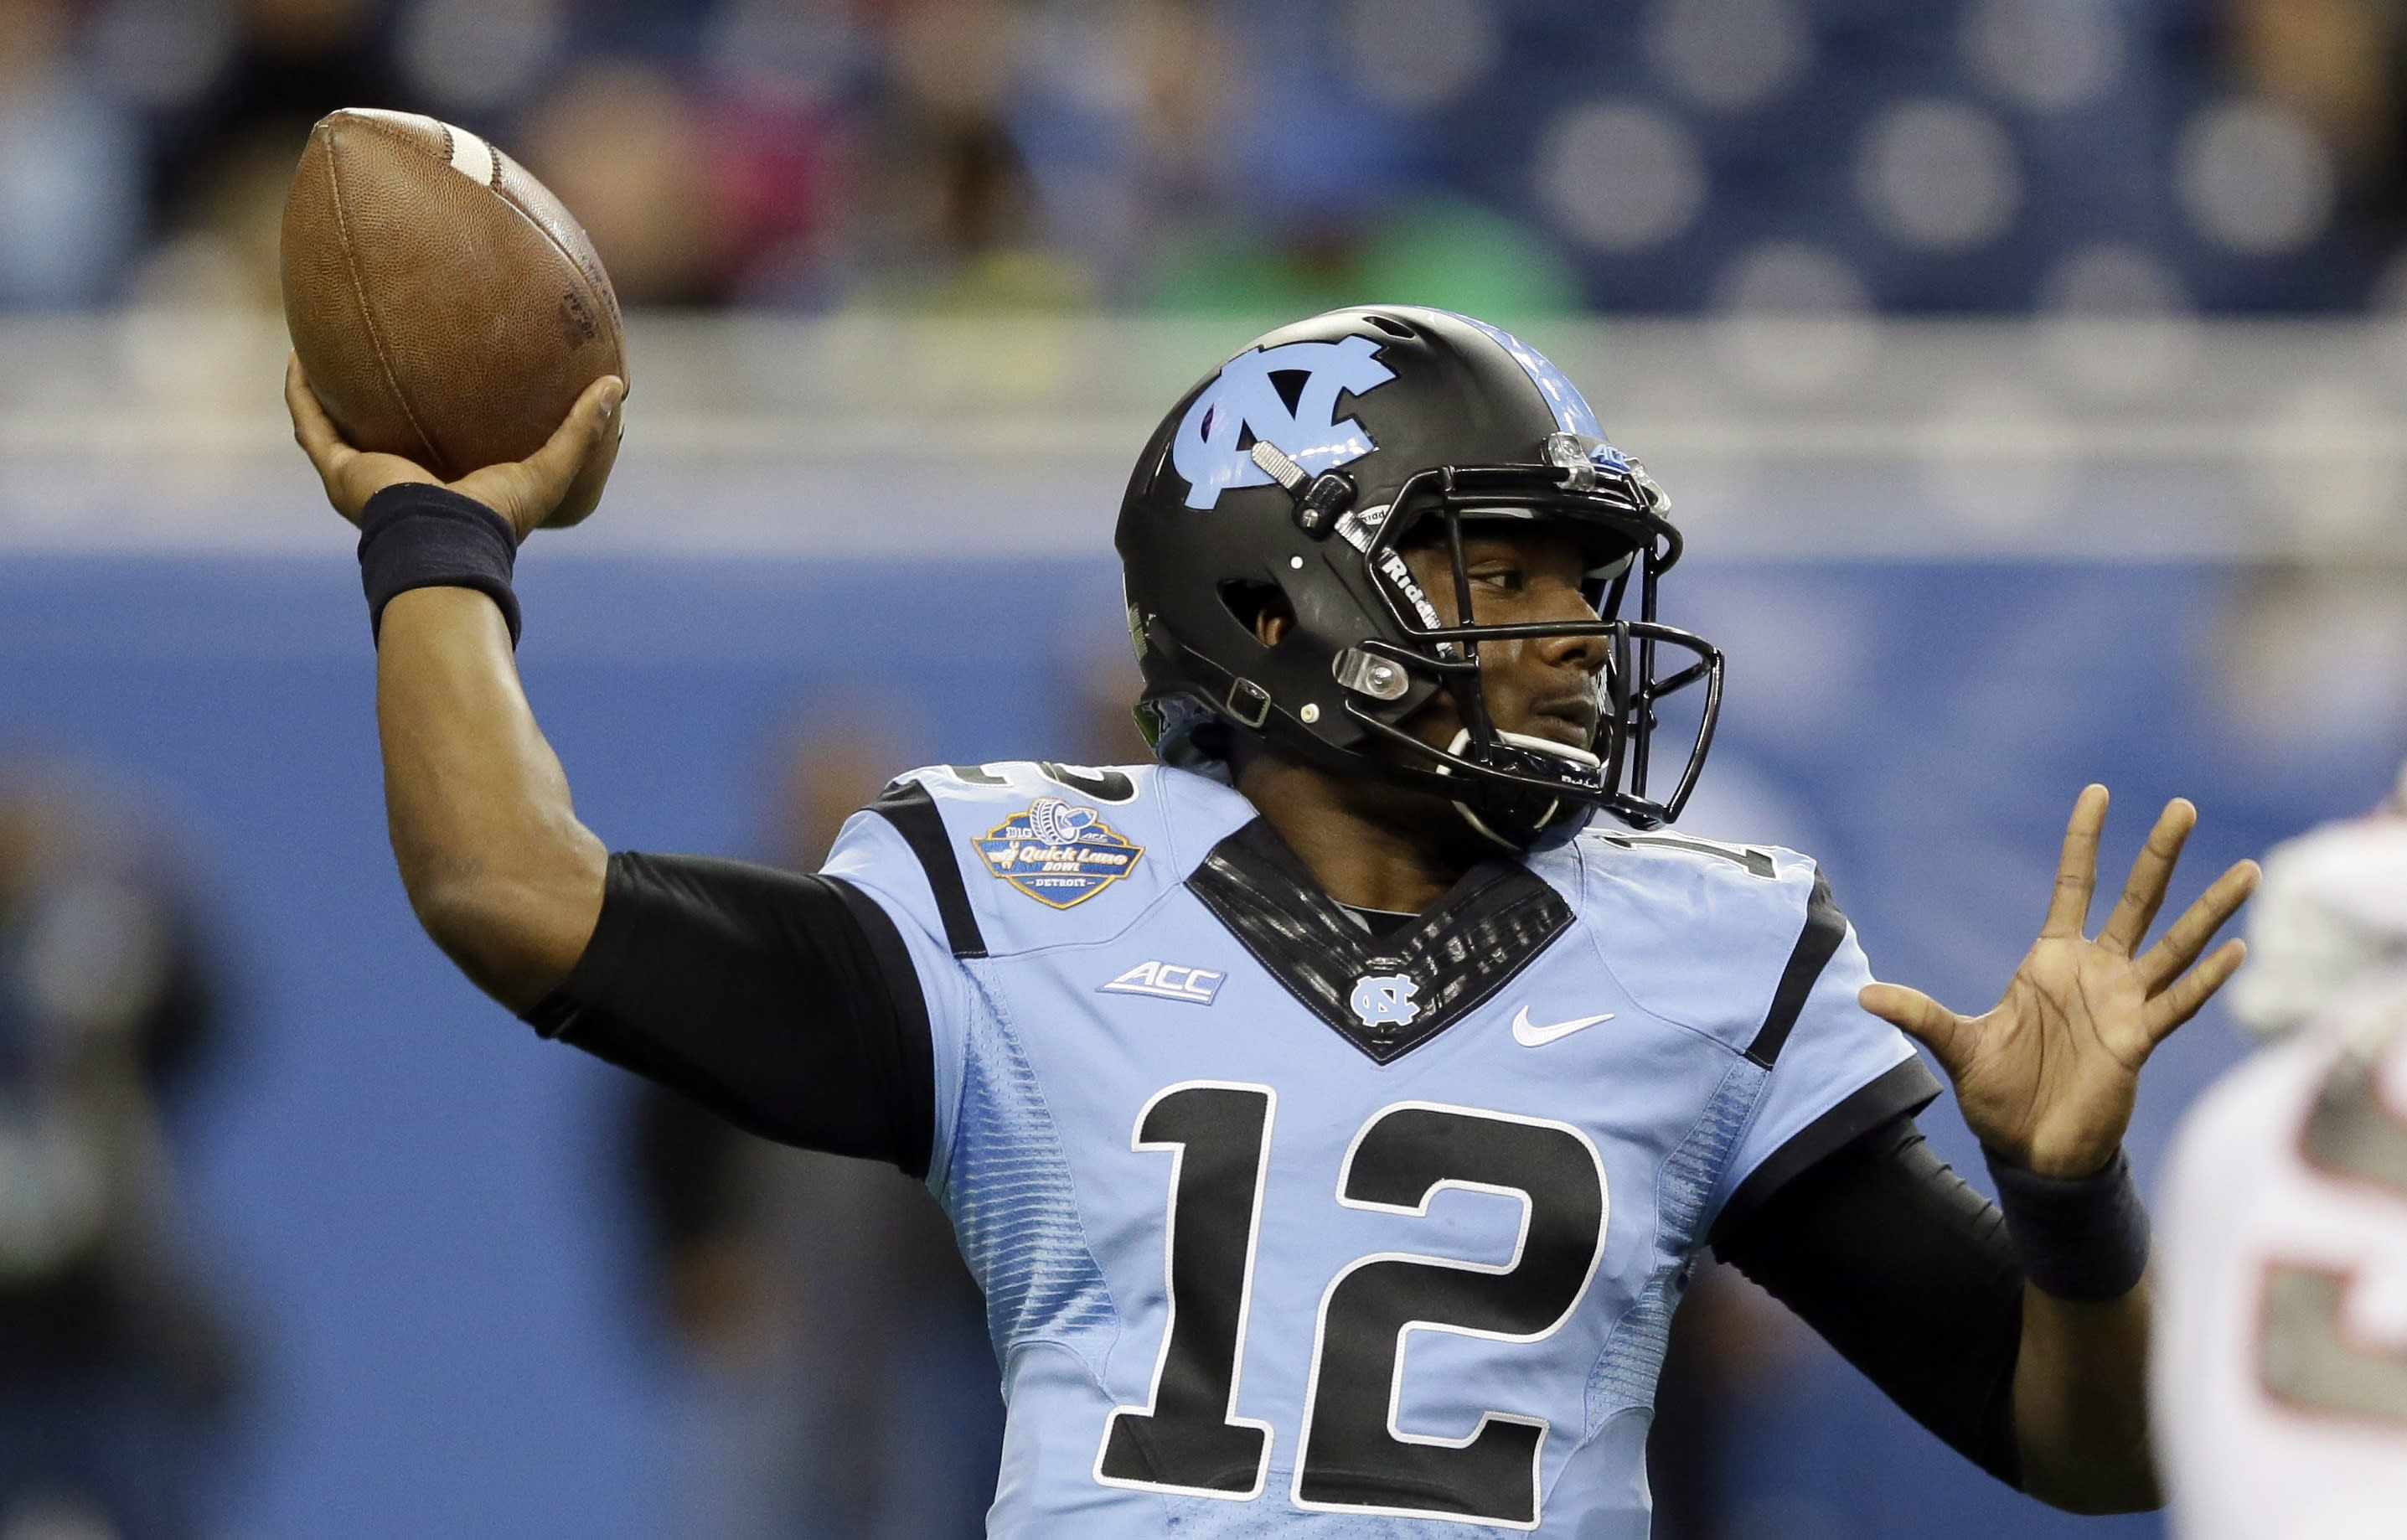 UNC QB Marquise Williams to miss spring practices with hip injury